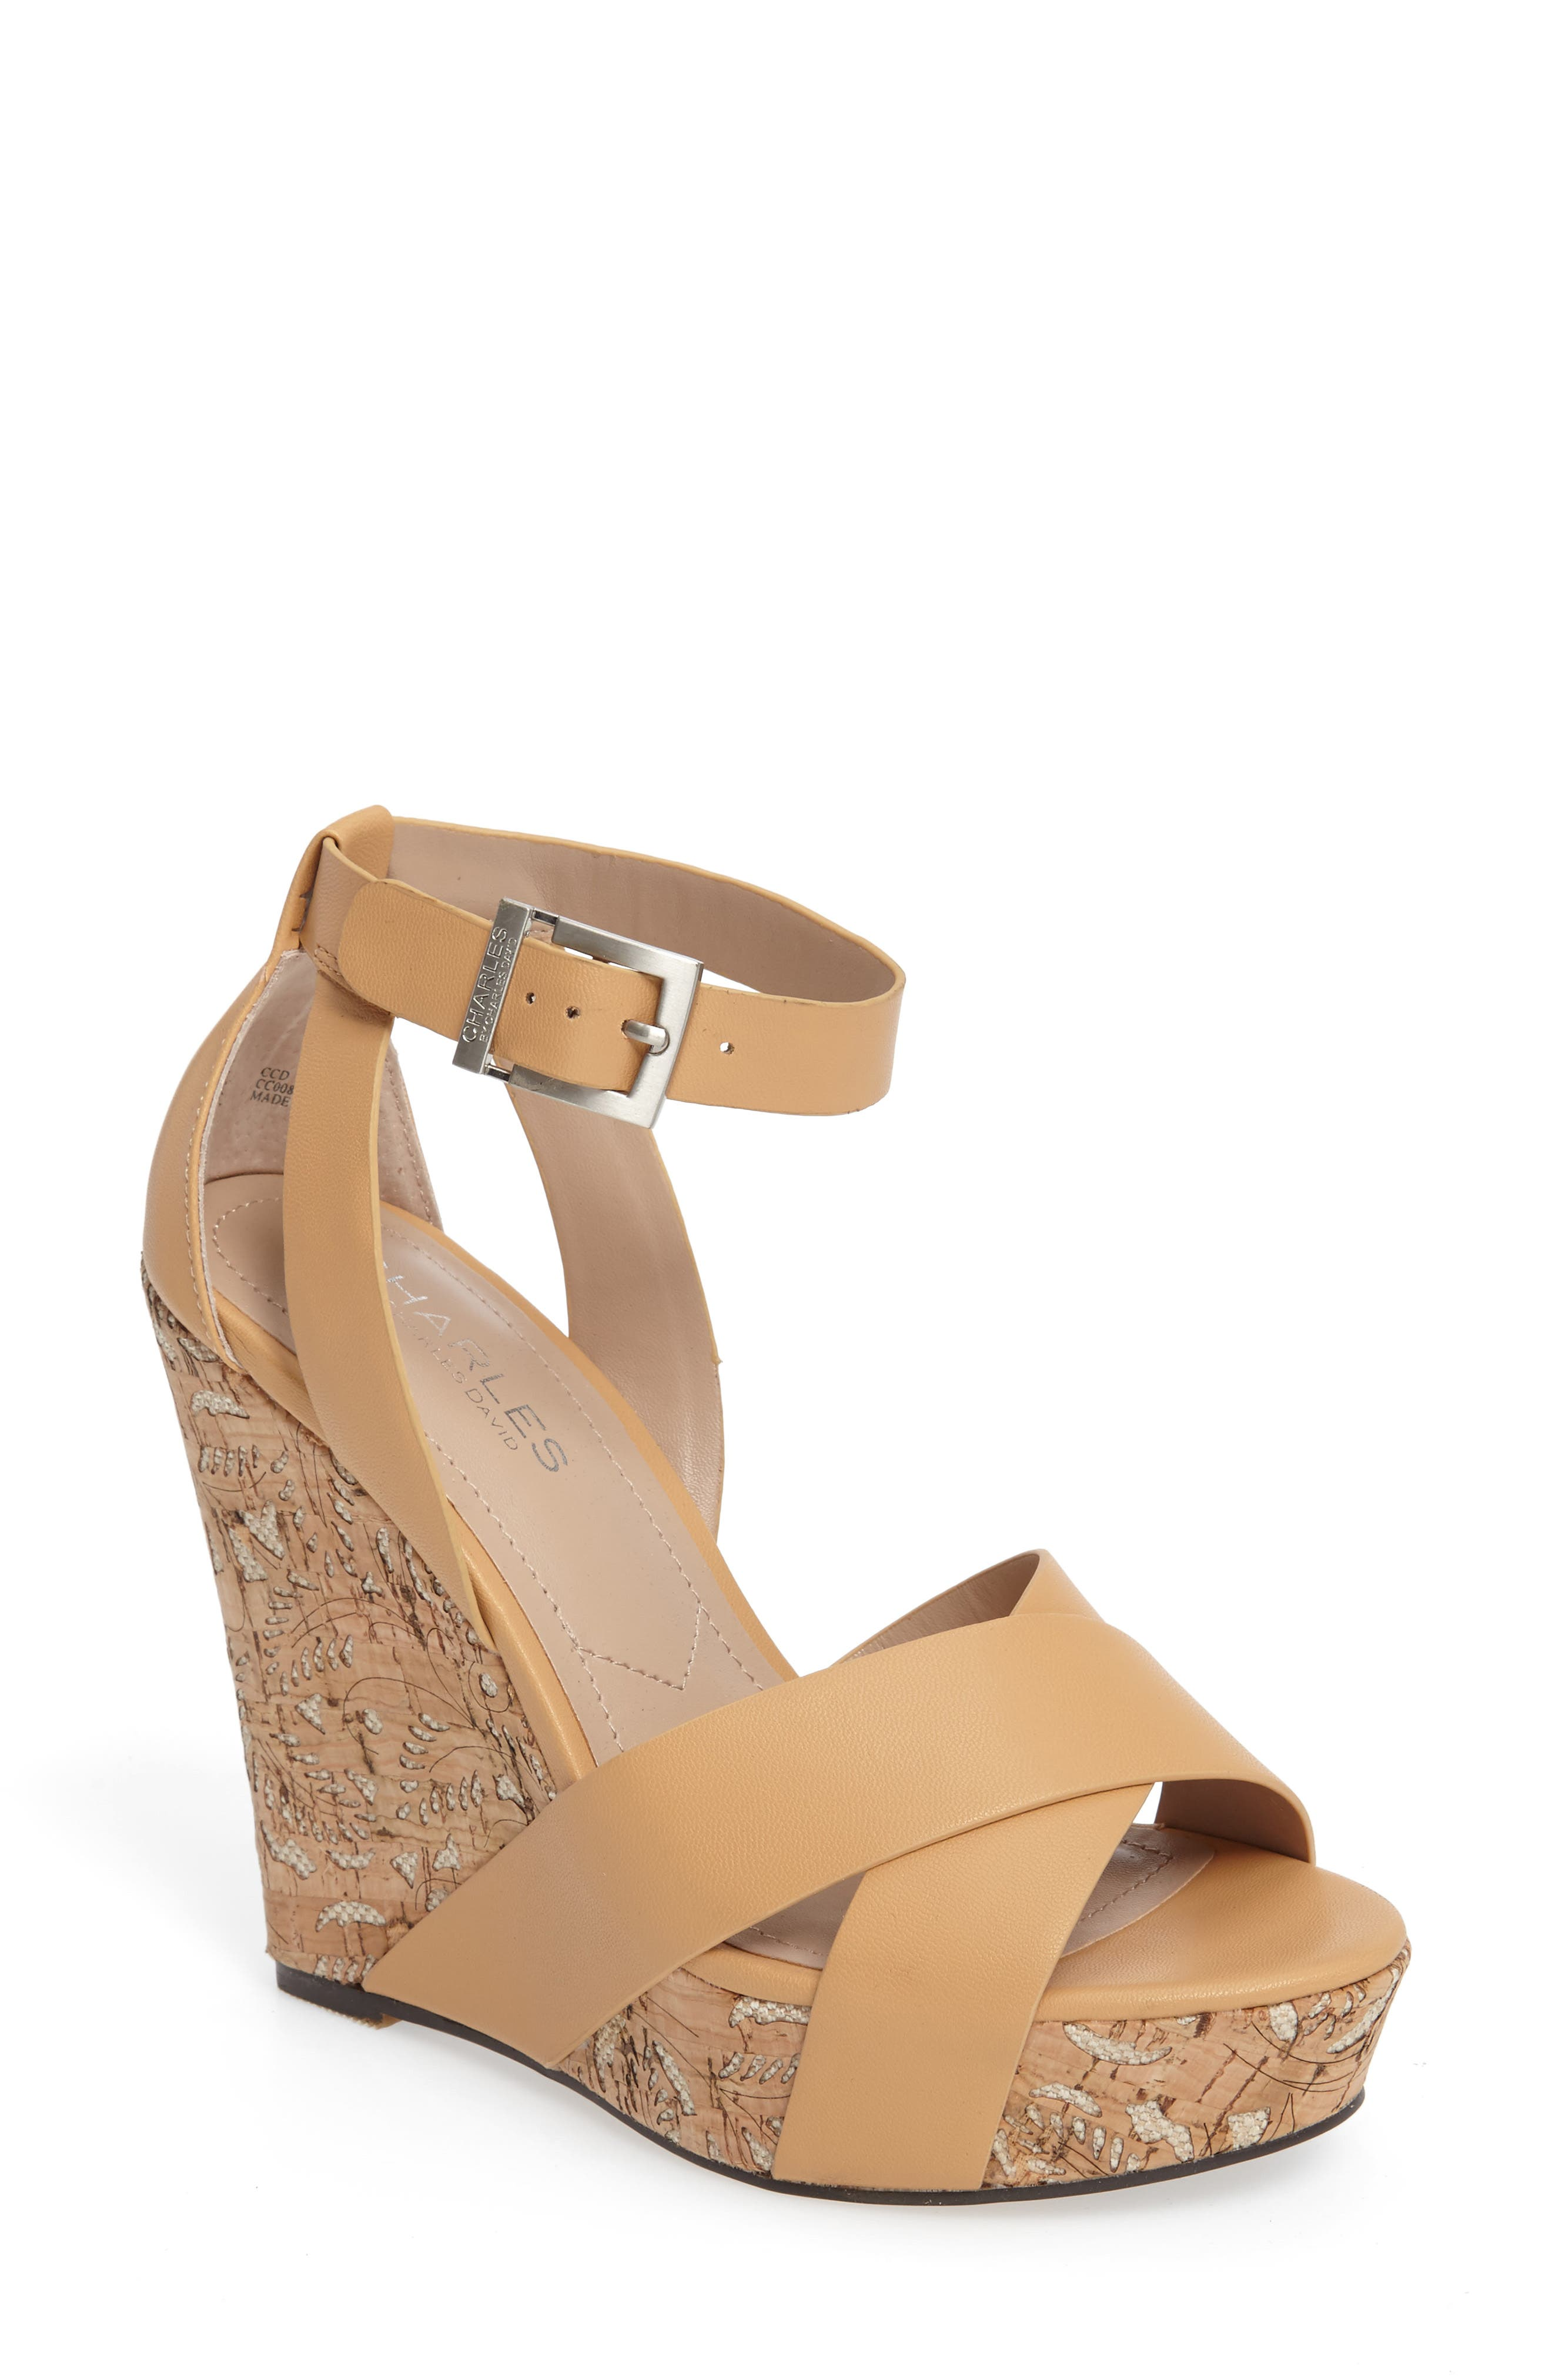 Amsterdam Platform Wedge Sandal,                             Main thumbnail 3, color,